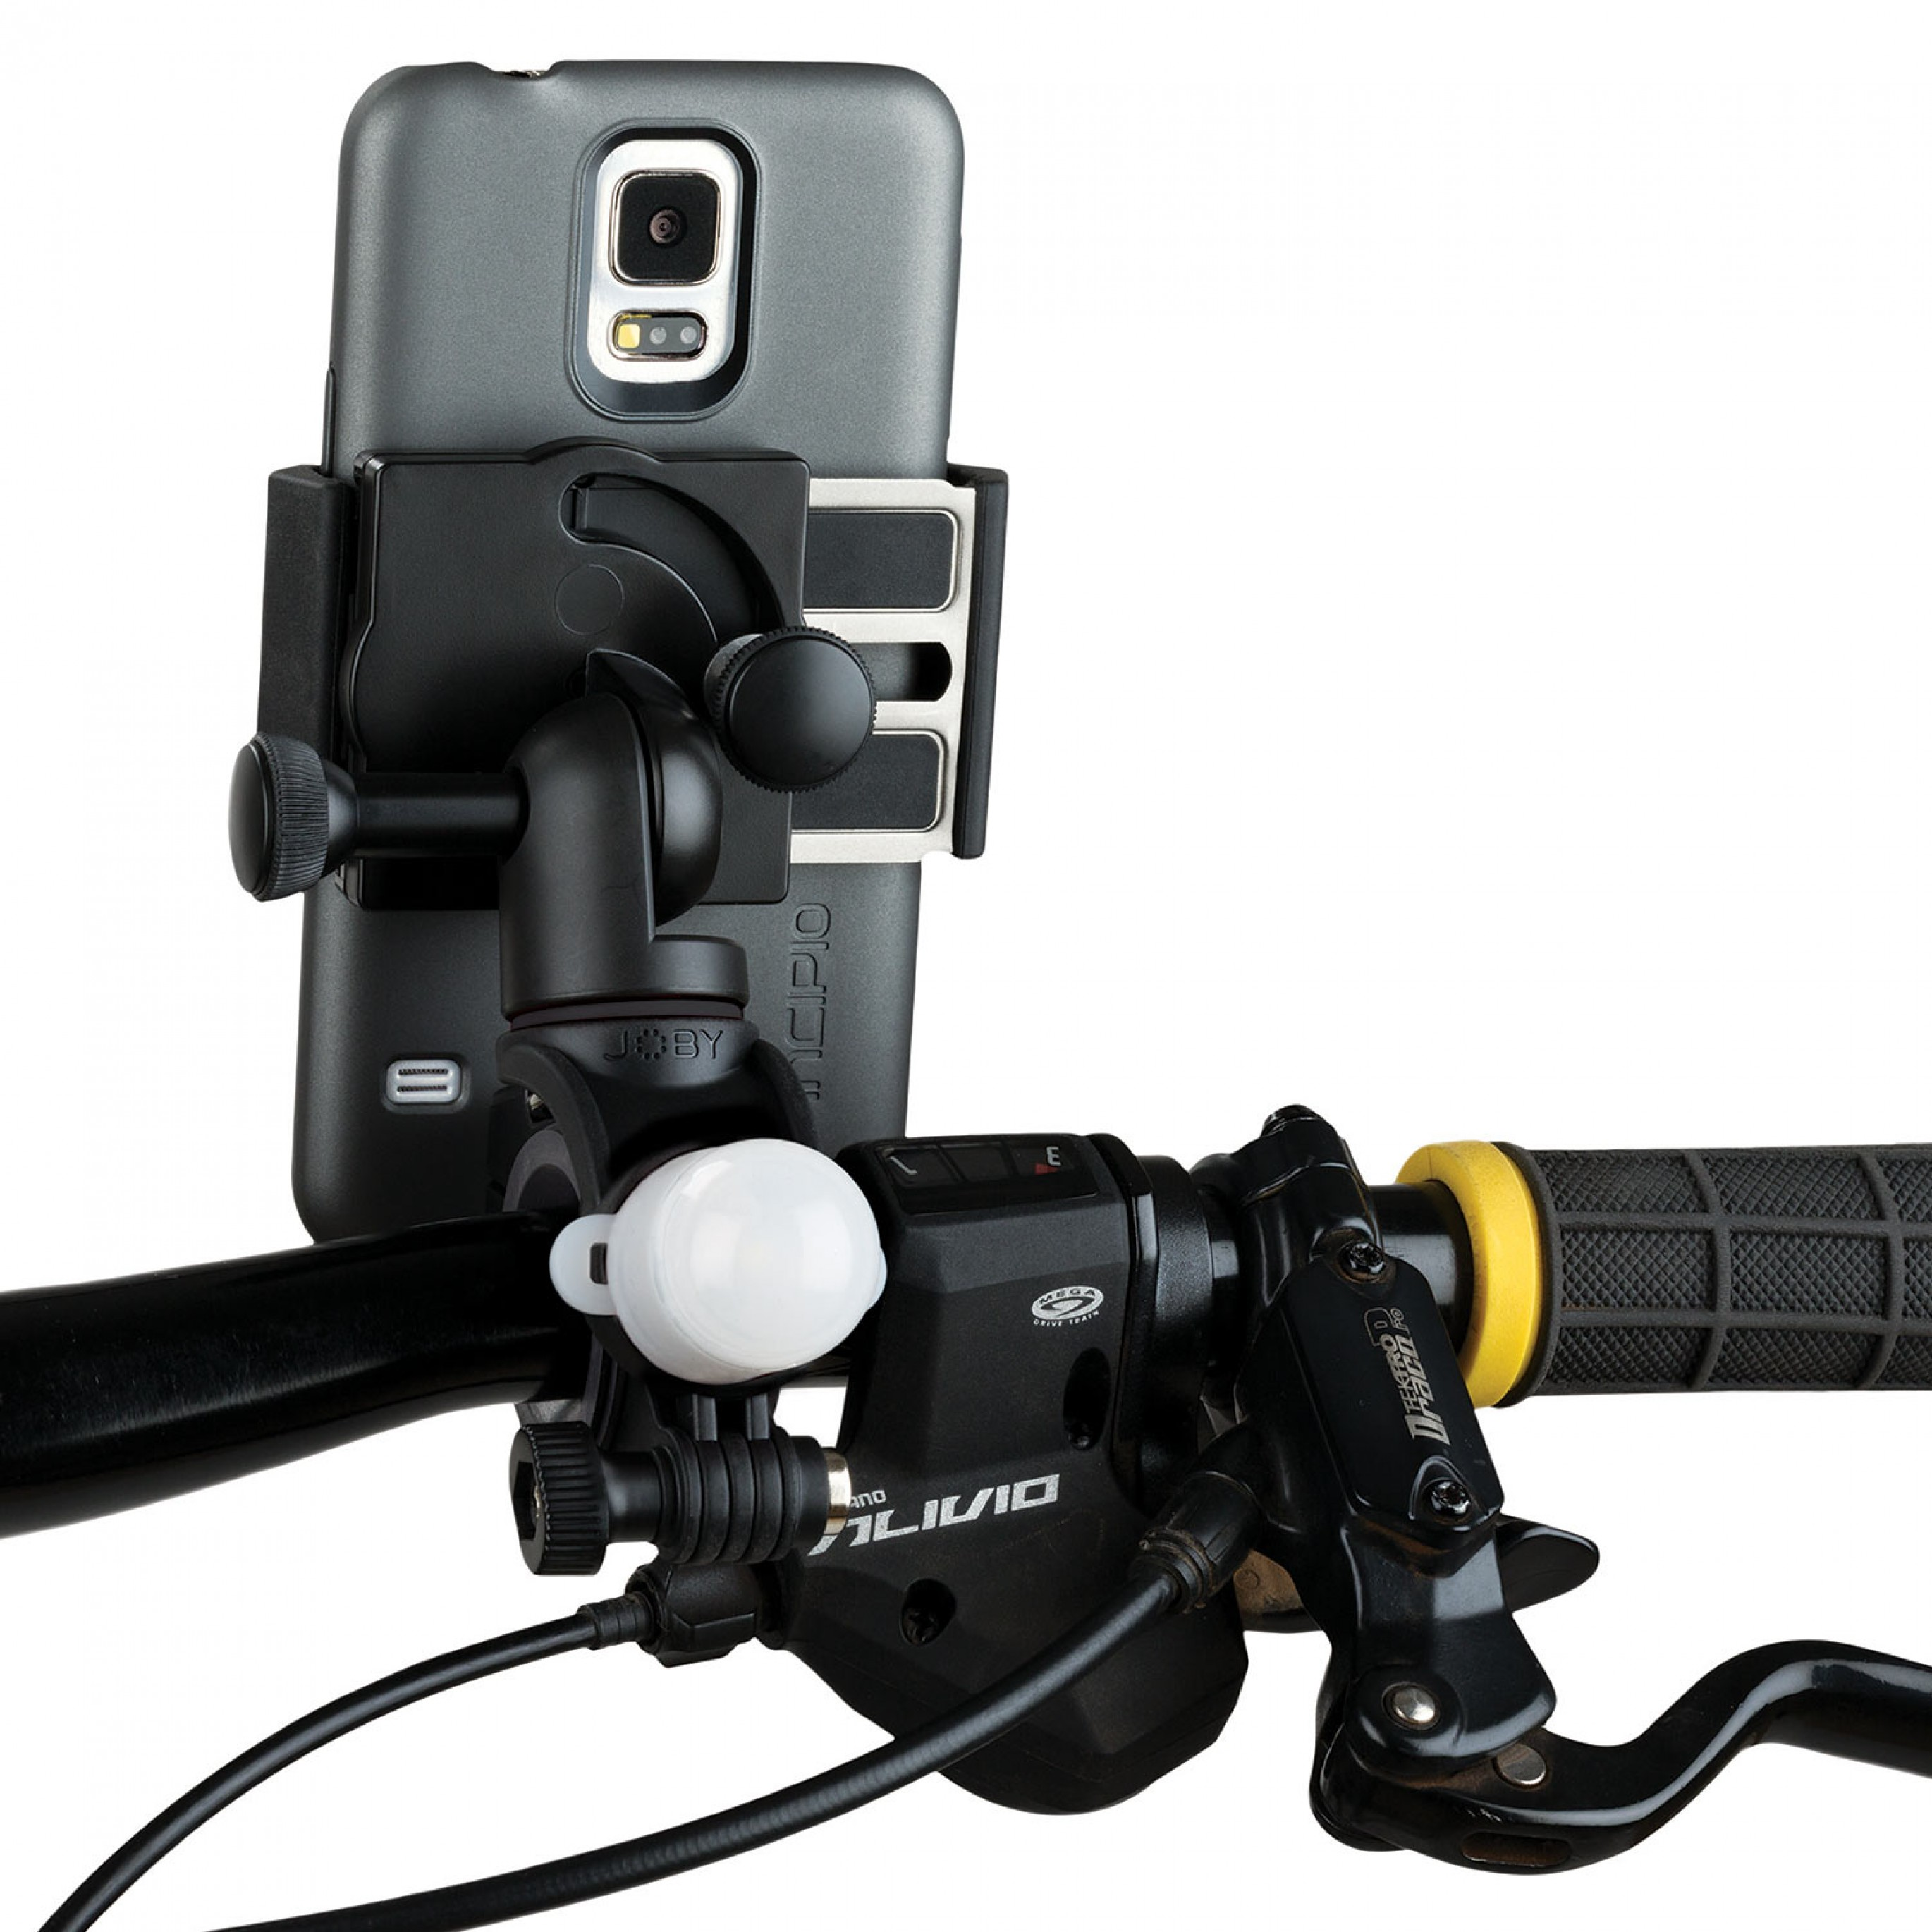 gt_bikemtpro_ltpk_back_lightonmount_android_1500_2_1